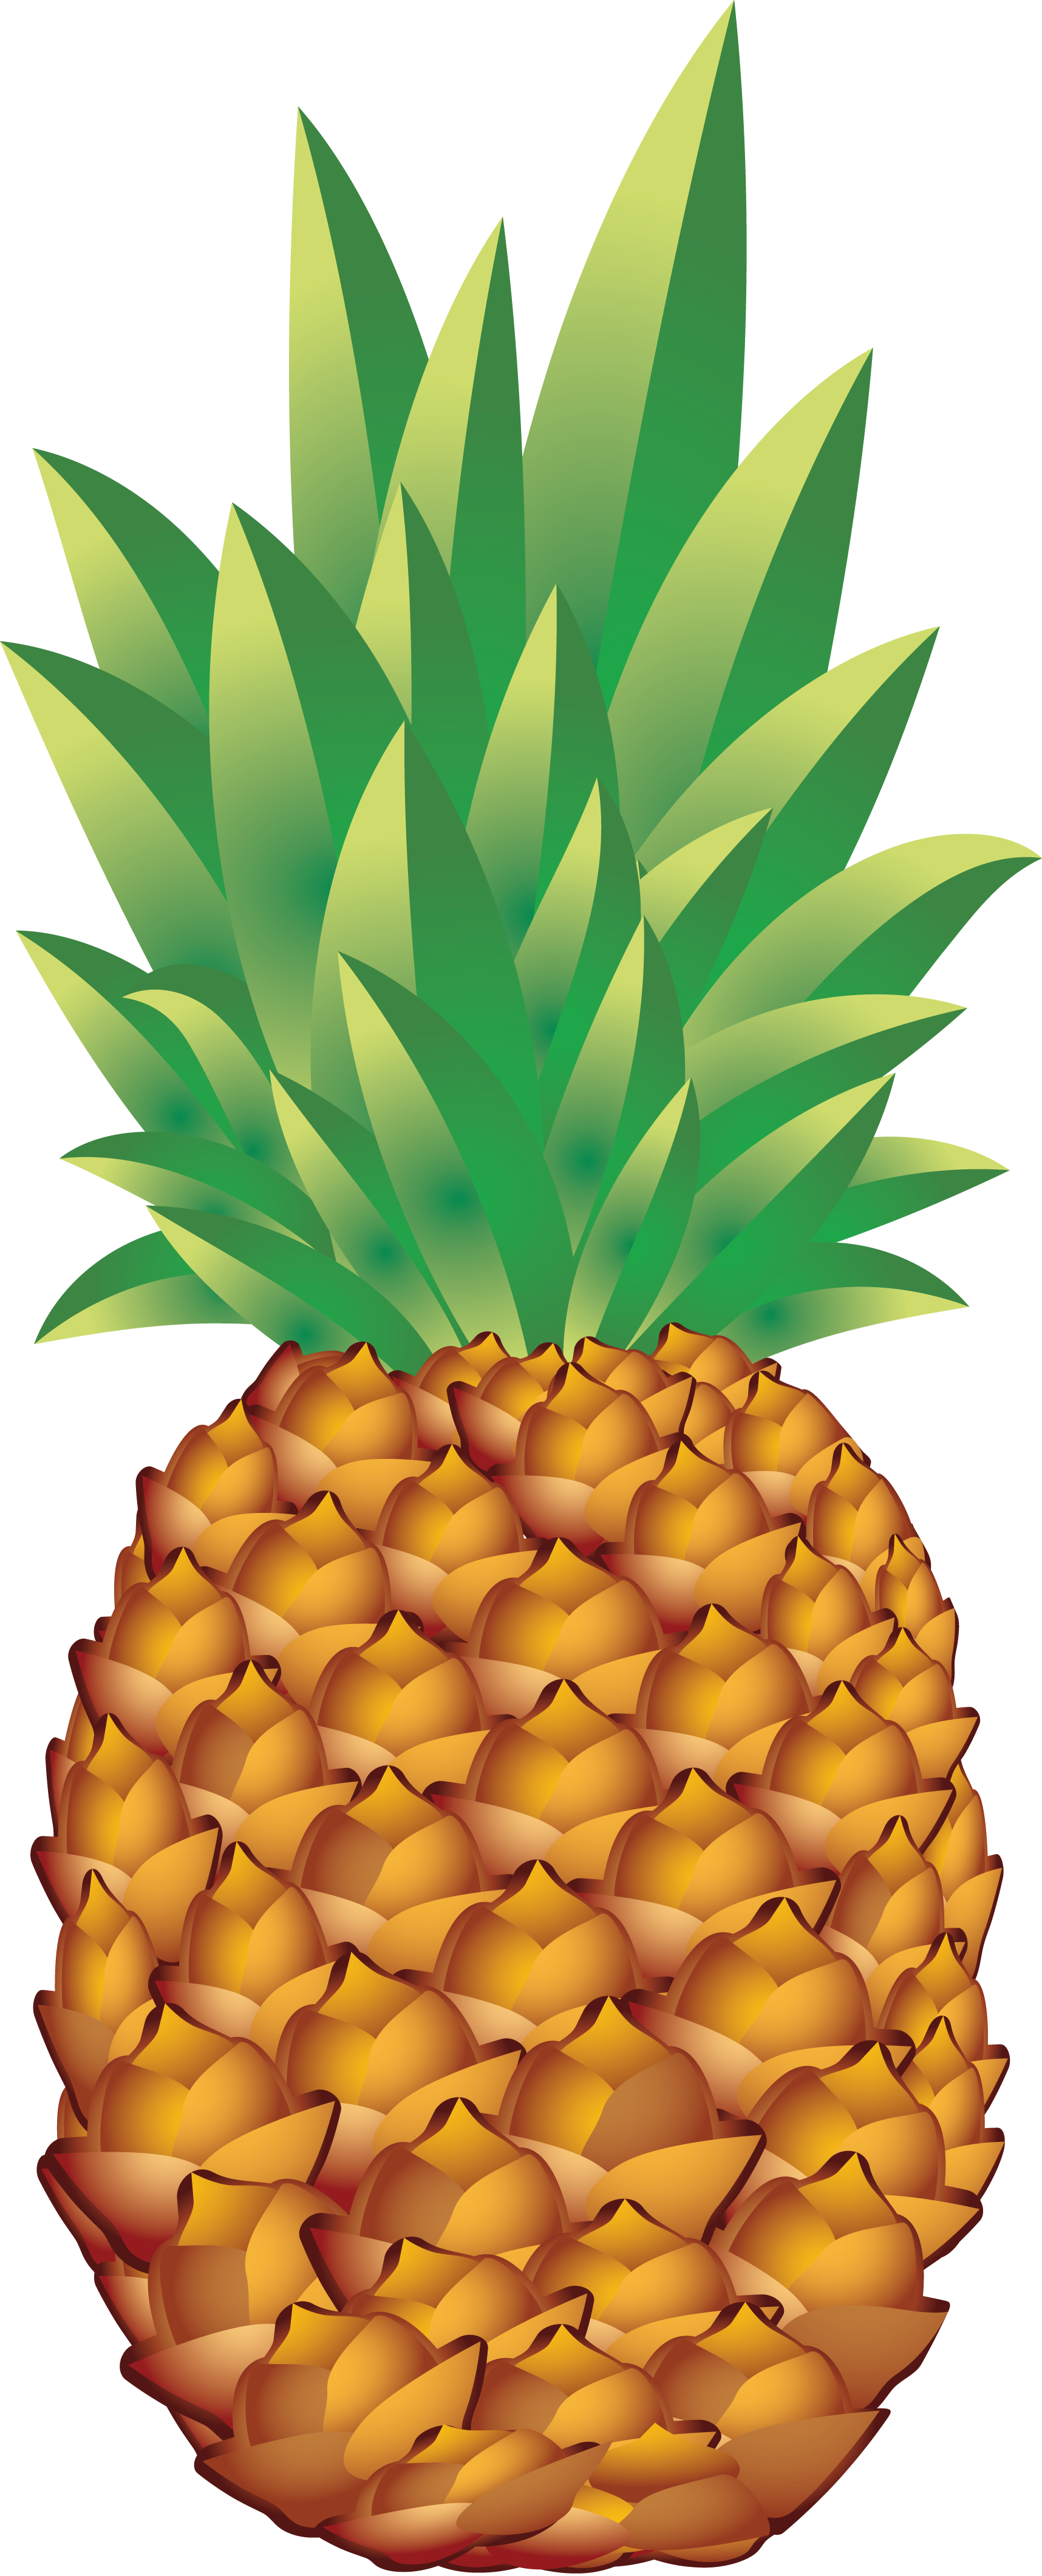 Pinaeapple clipart svg transparent download tumblr pineapple - Google Search | Transparent | Food png ... svg transparent download